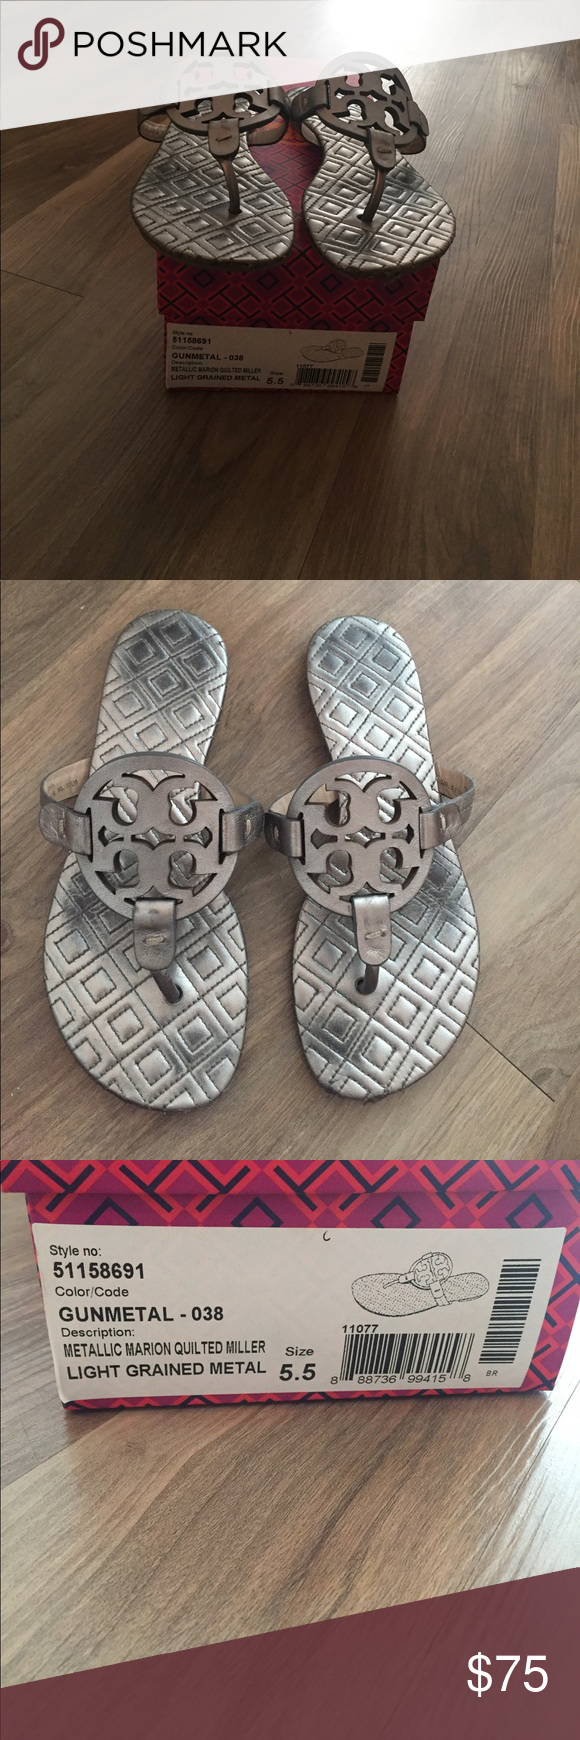 3231e4b961a1f Tory Burch Metallic Miller sandals size 5.5 Tory Burch Metallic Marion  Quilted Miller sandals size 5.5